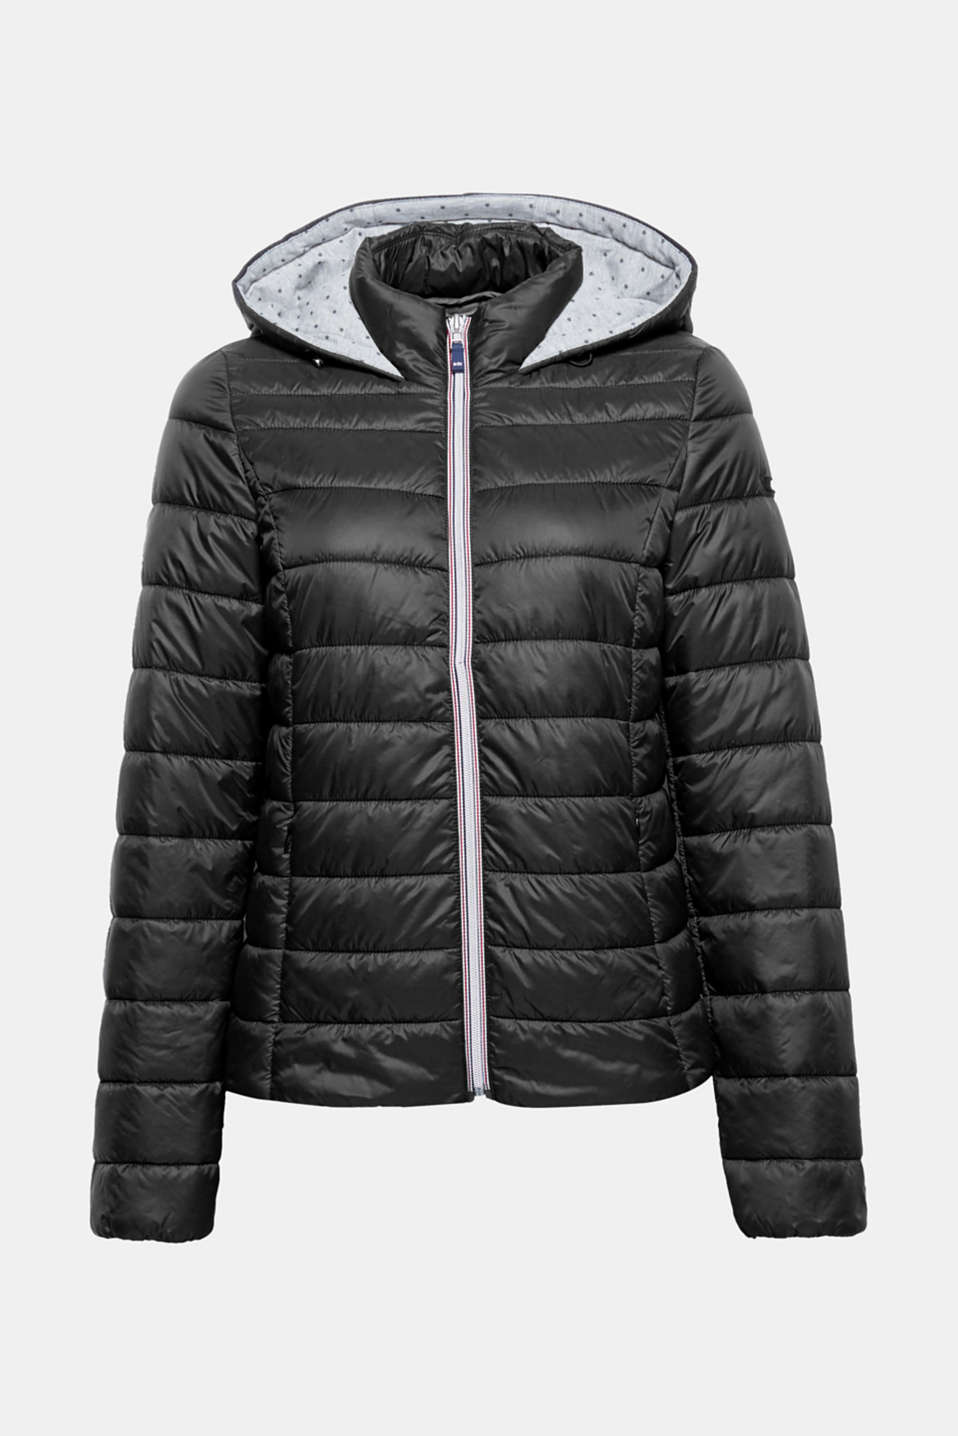 This lightweight quilted jacket with a functional hood and a straight, comfortable cut is a practical trend piece for between the seasons.